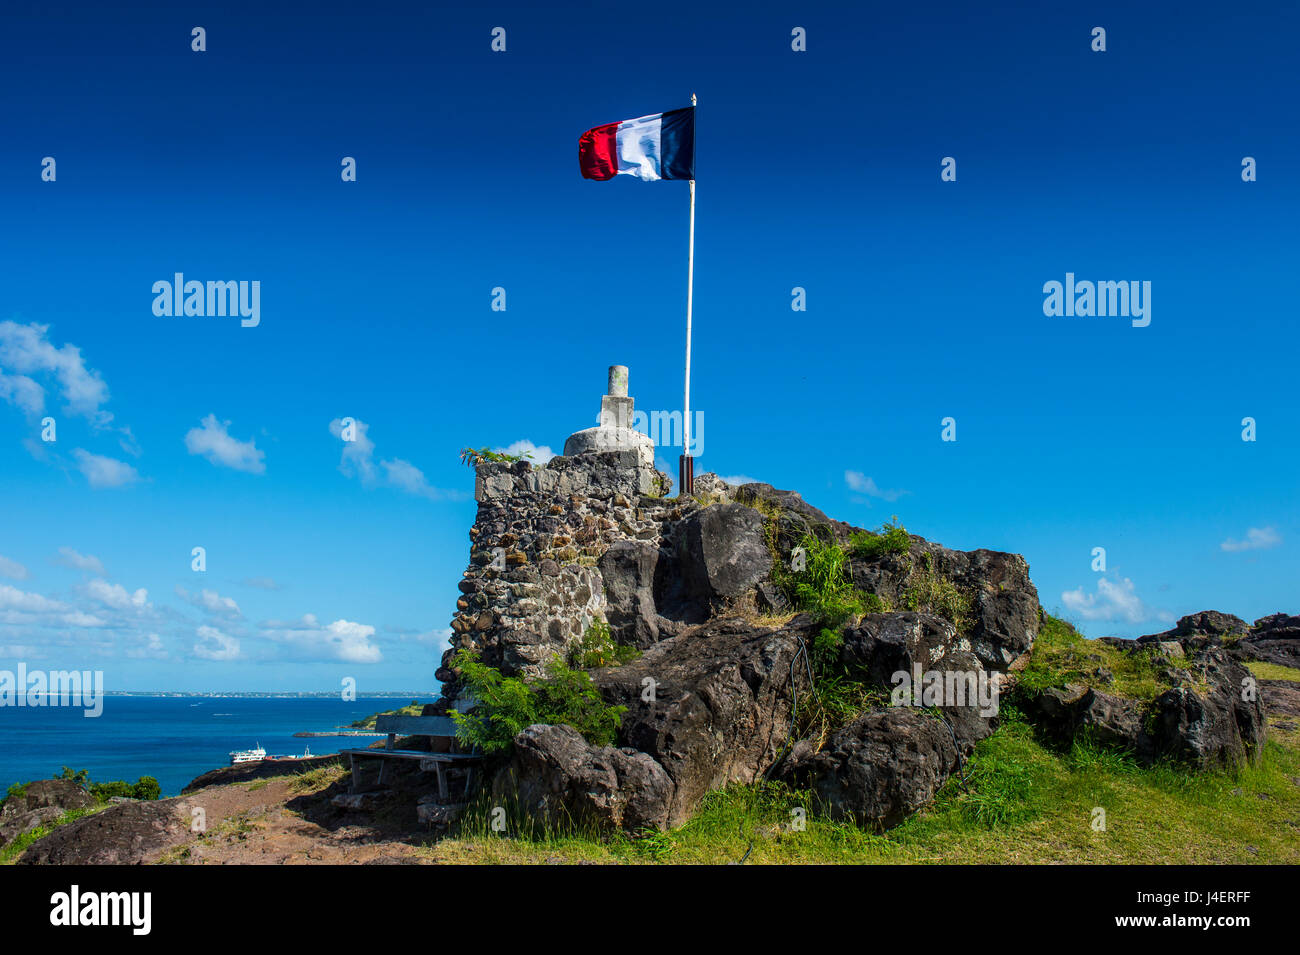 Fort St. Louis, St. Martin, French territory, West Indies, Caribbean, Central America - Stock Image